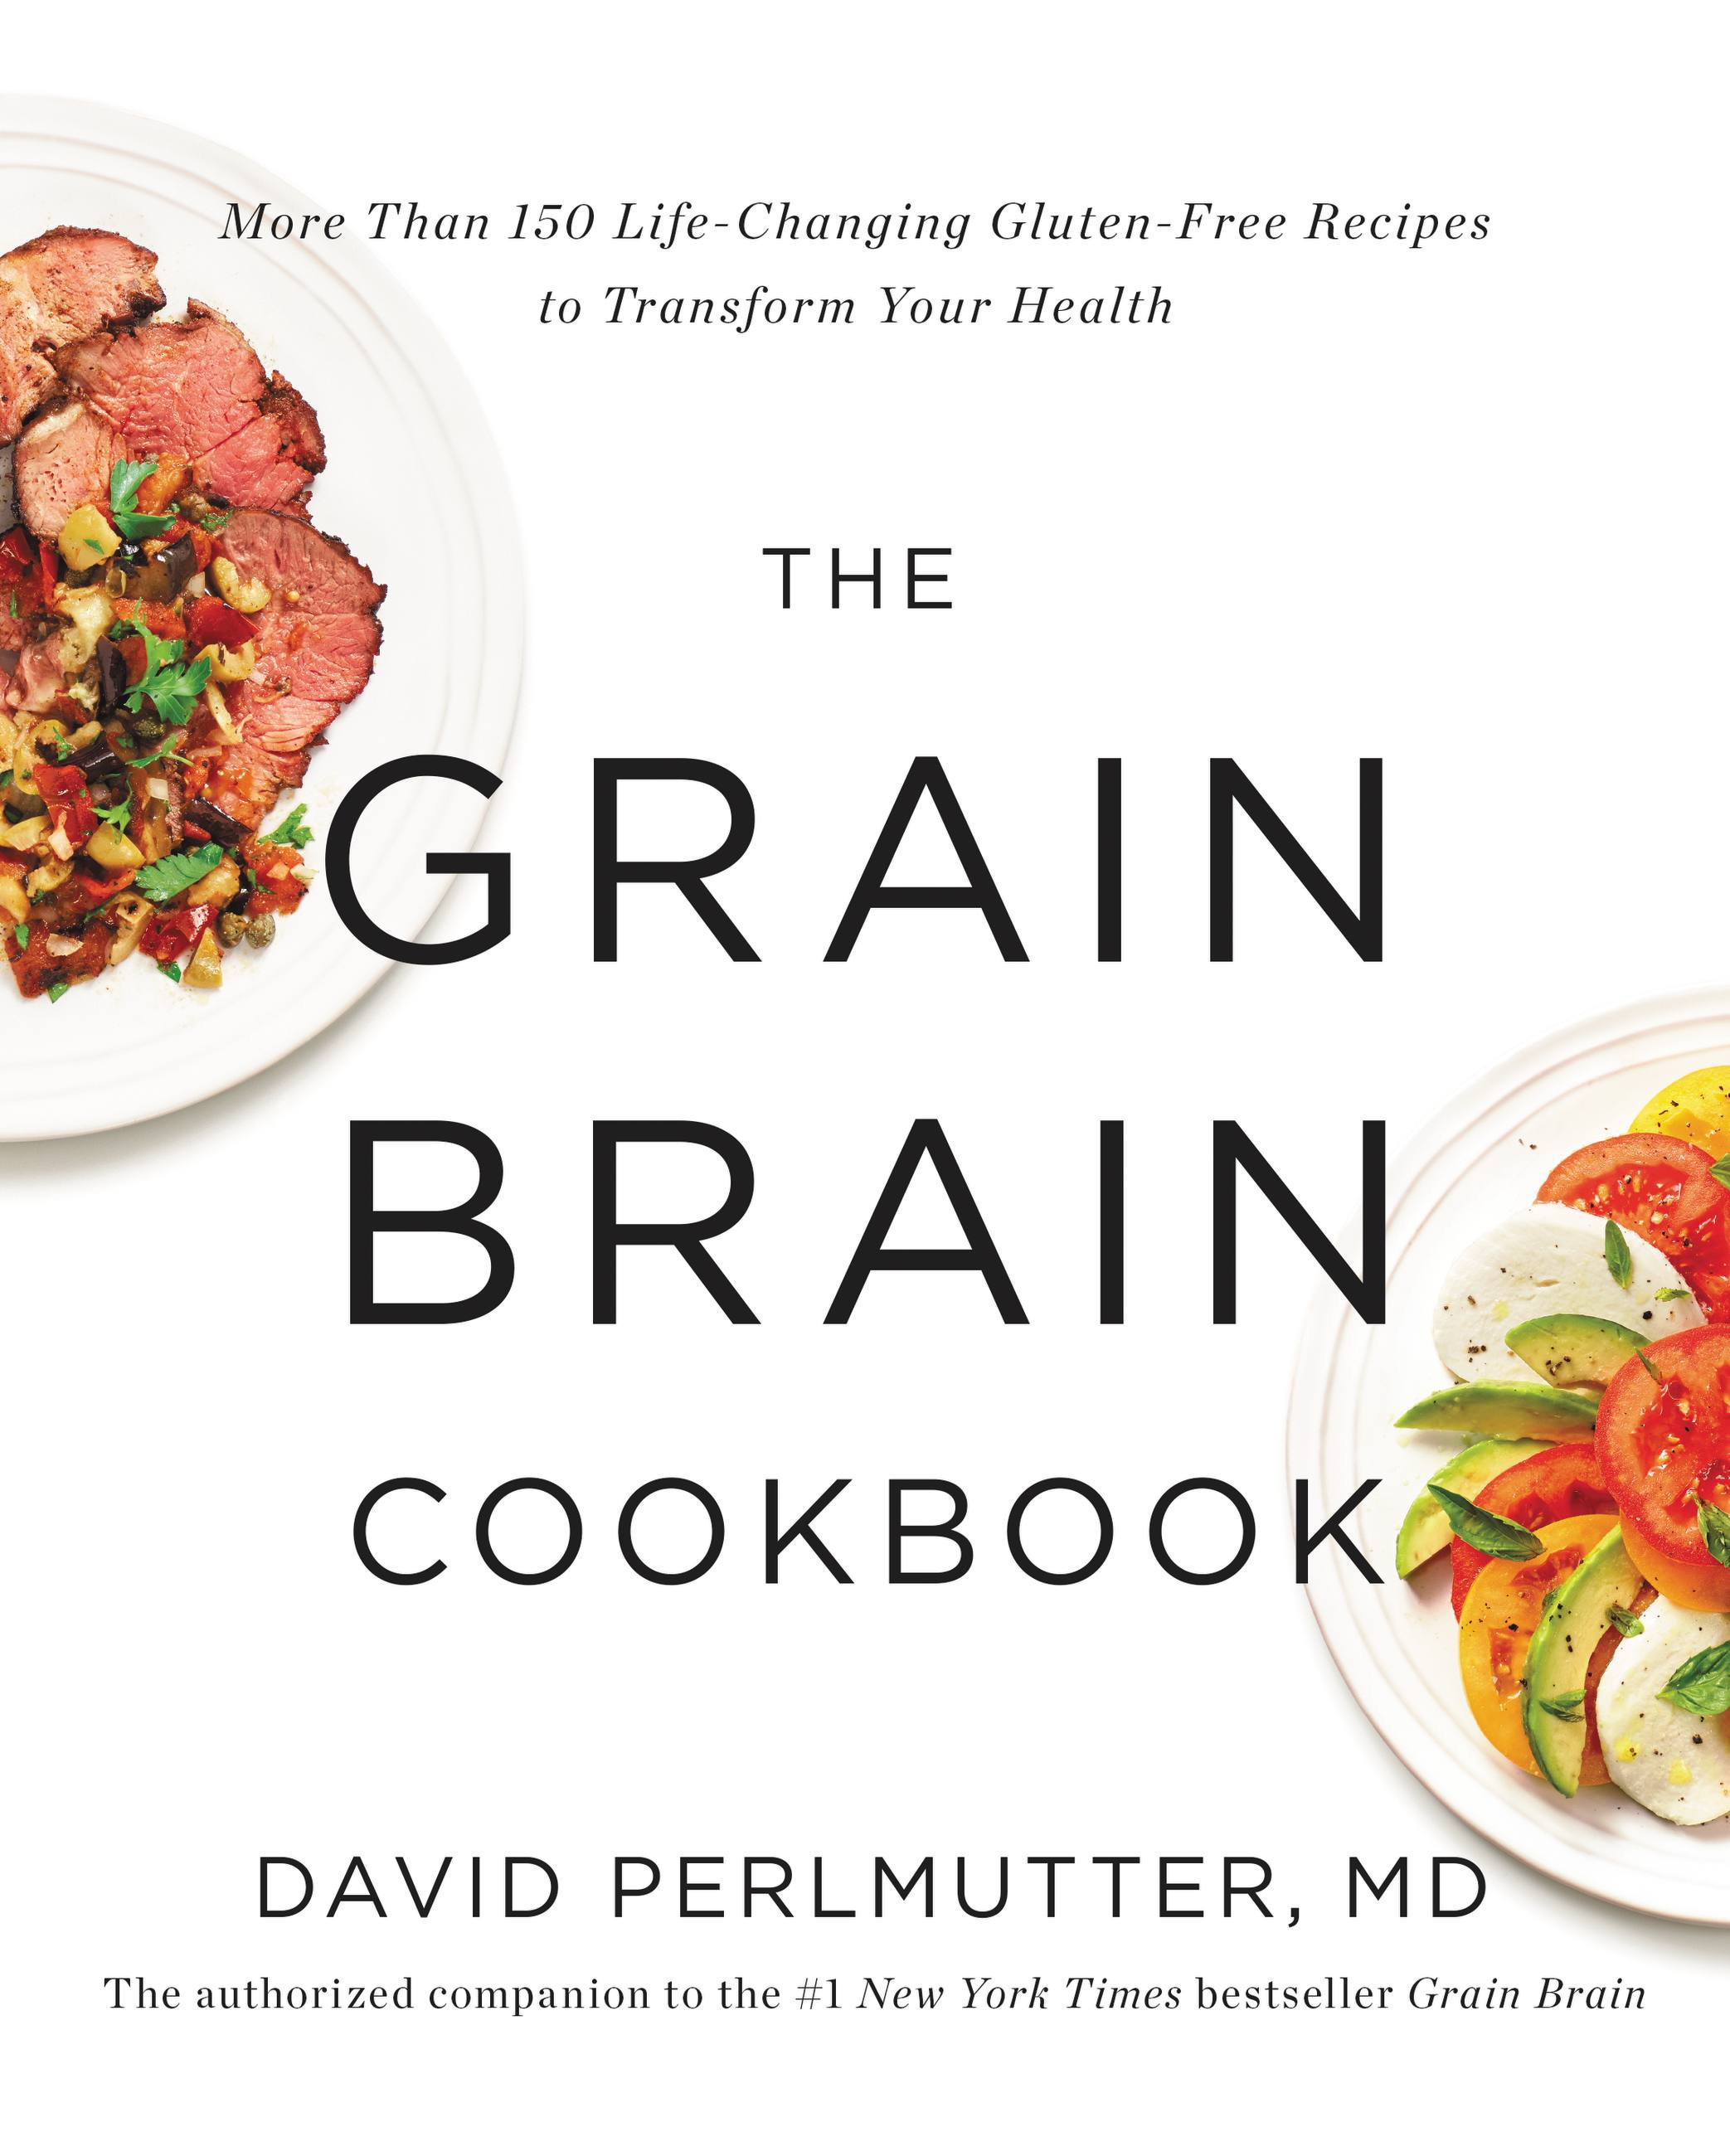 Cover image for The Grain Brain Cookbook [electronic resource] : More Than 150 Life-Changing Gluten-Free Recipes to Transform Your Health